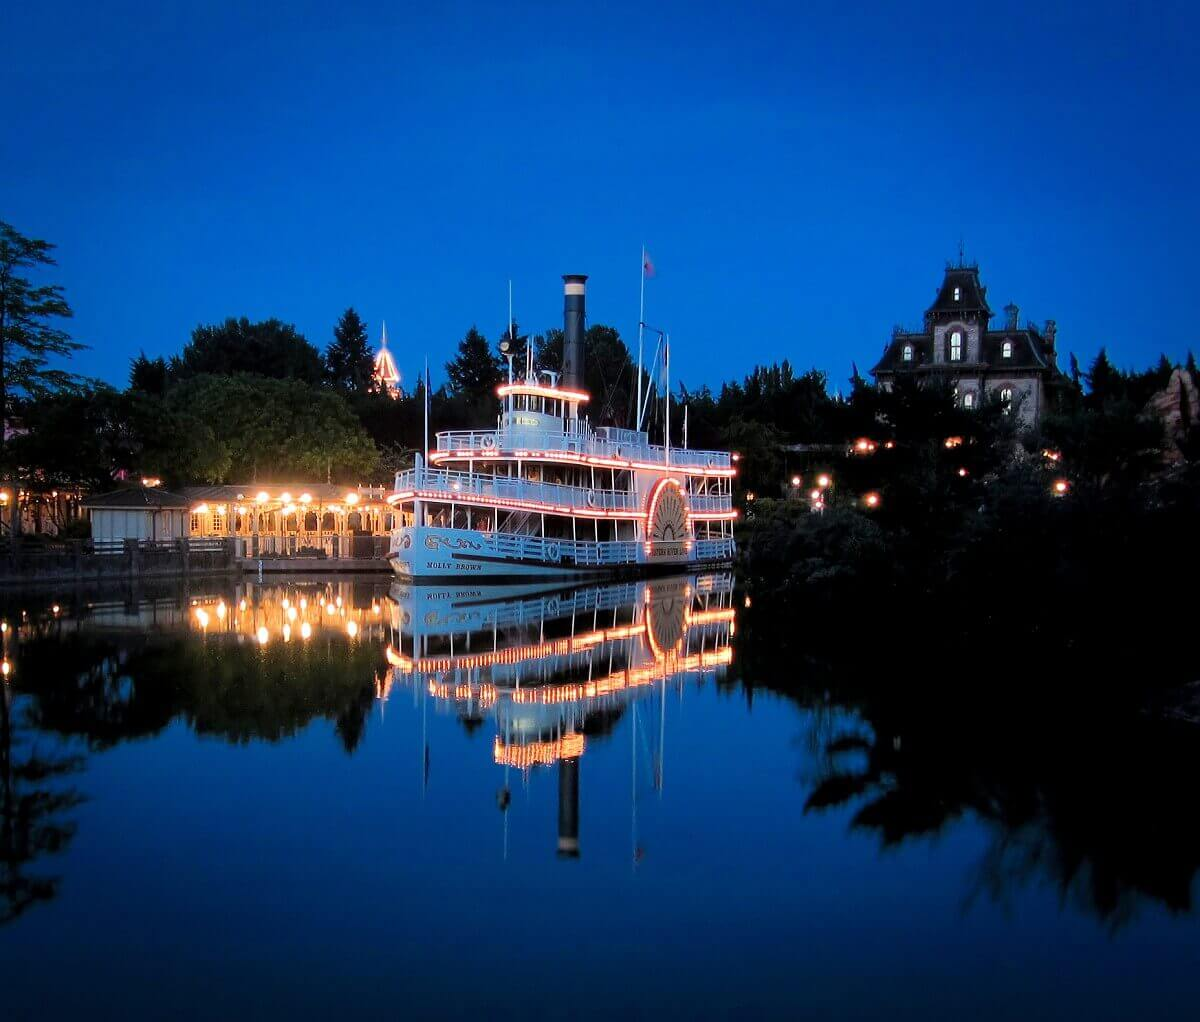 The Steamboat lights up at night, behind it you can see Phantom Manor